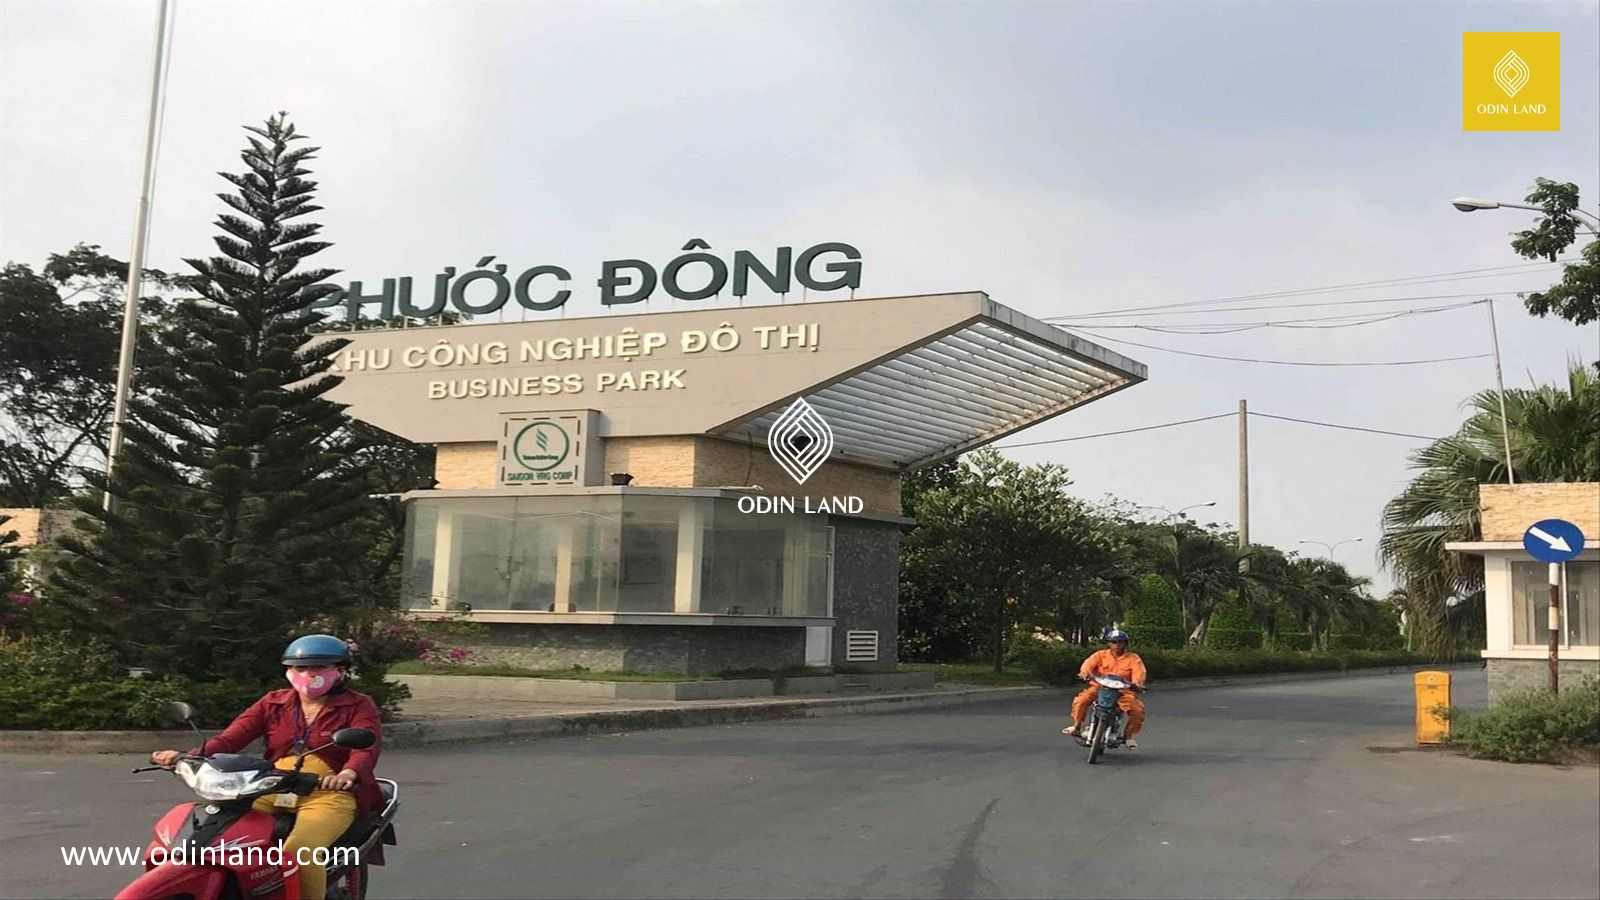 khu cong nghiep phuoc dong 4 result